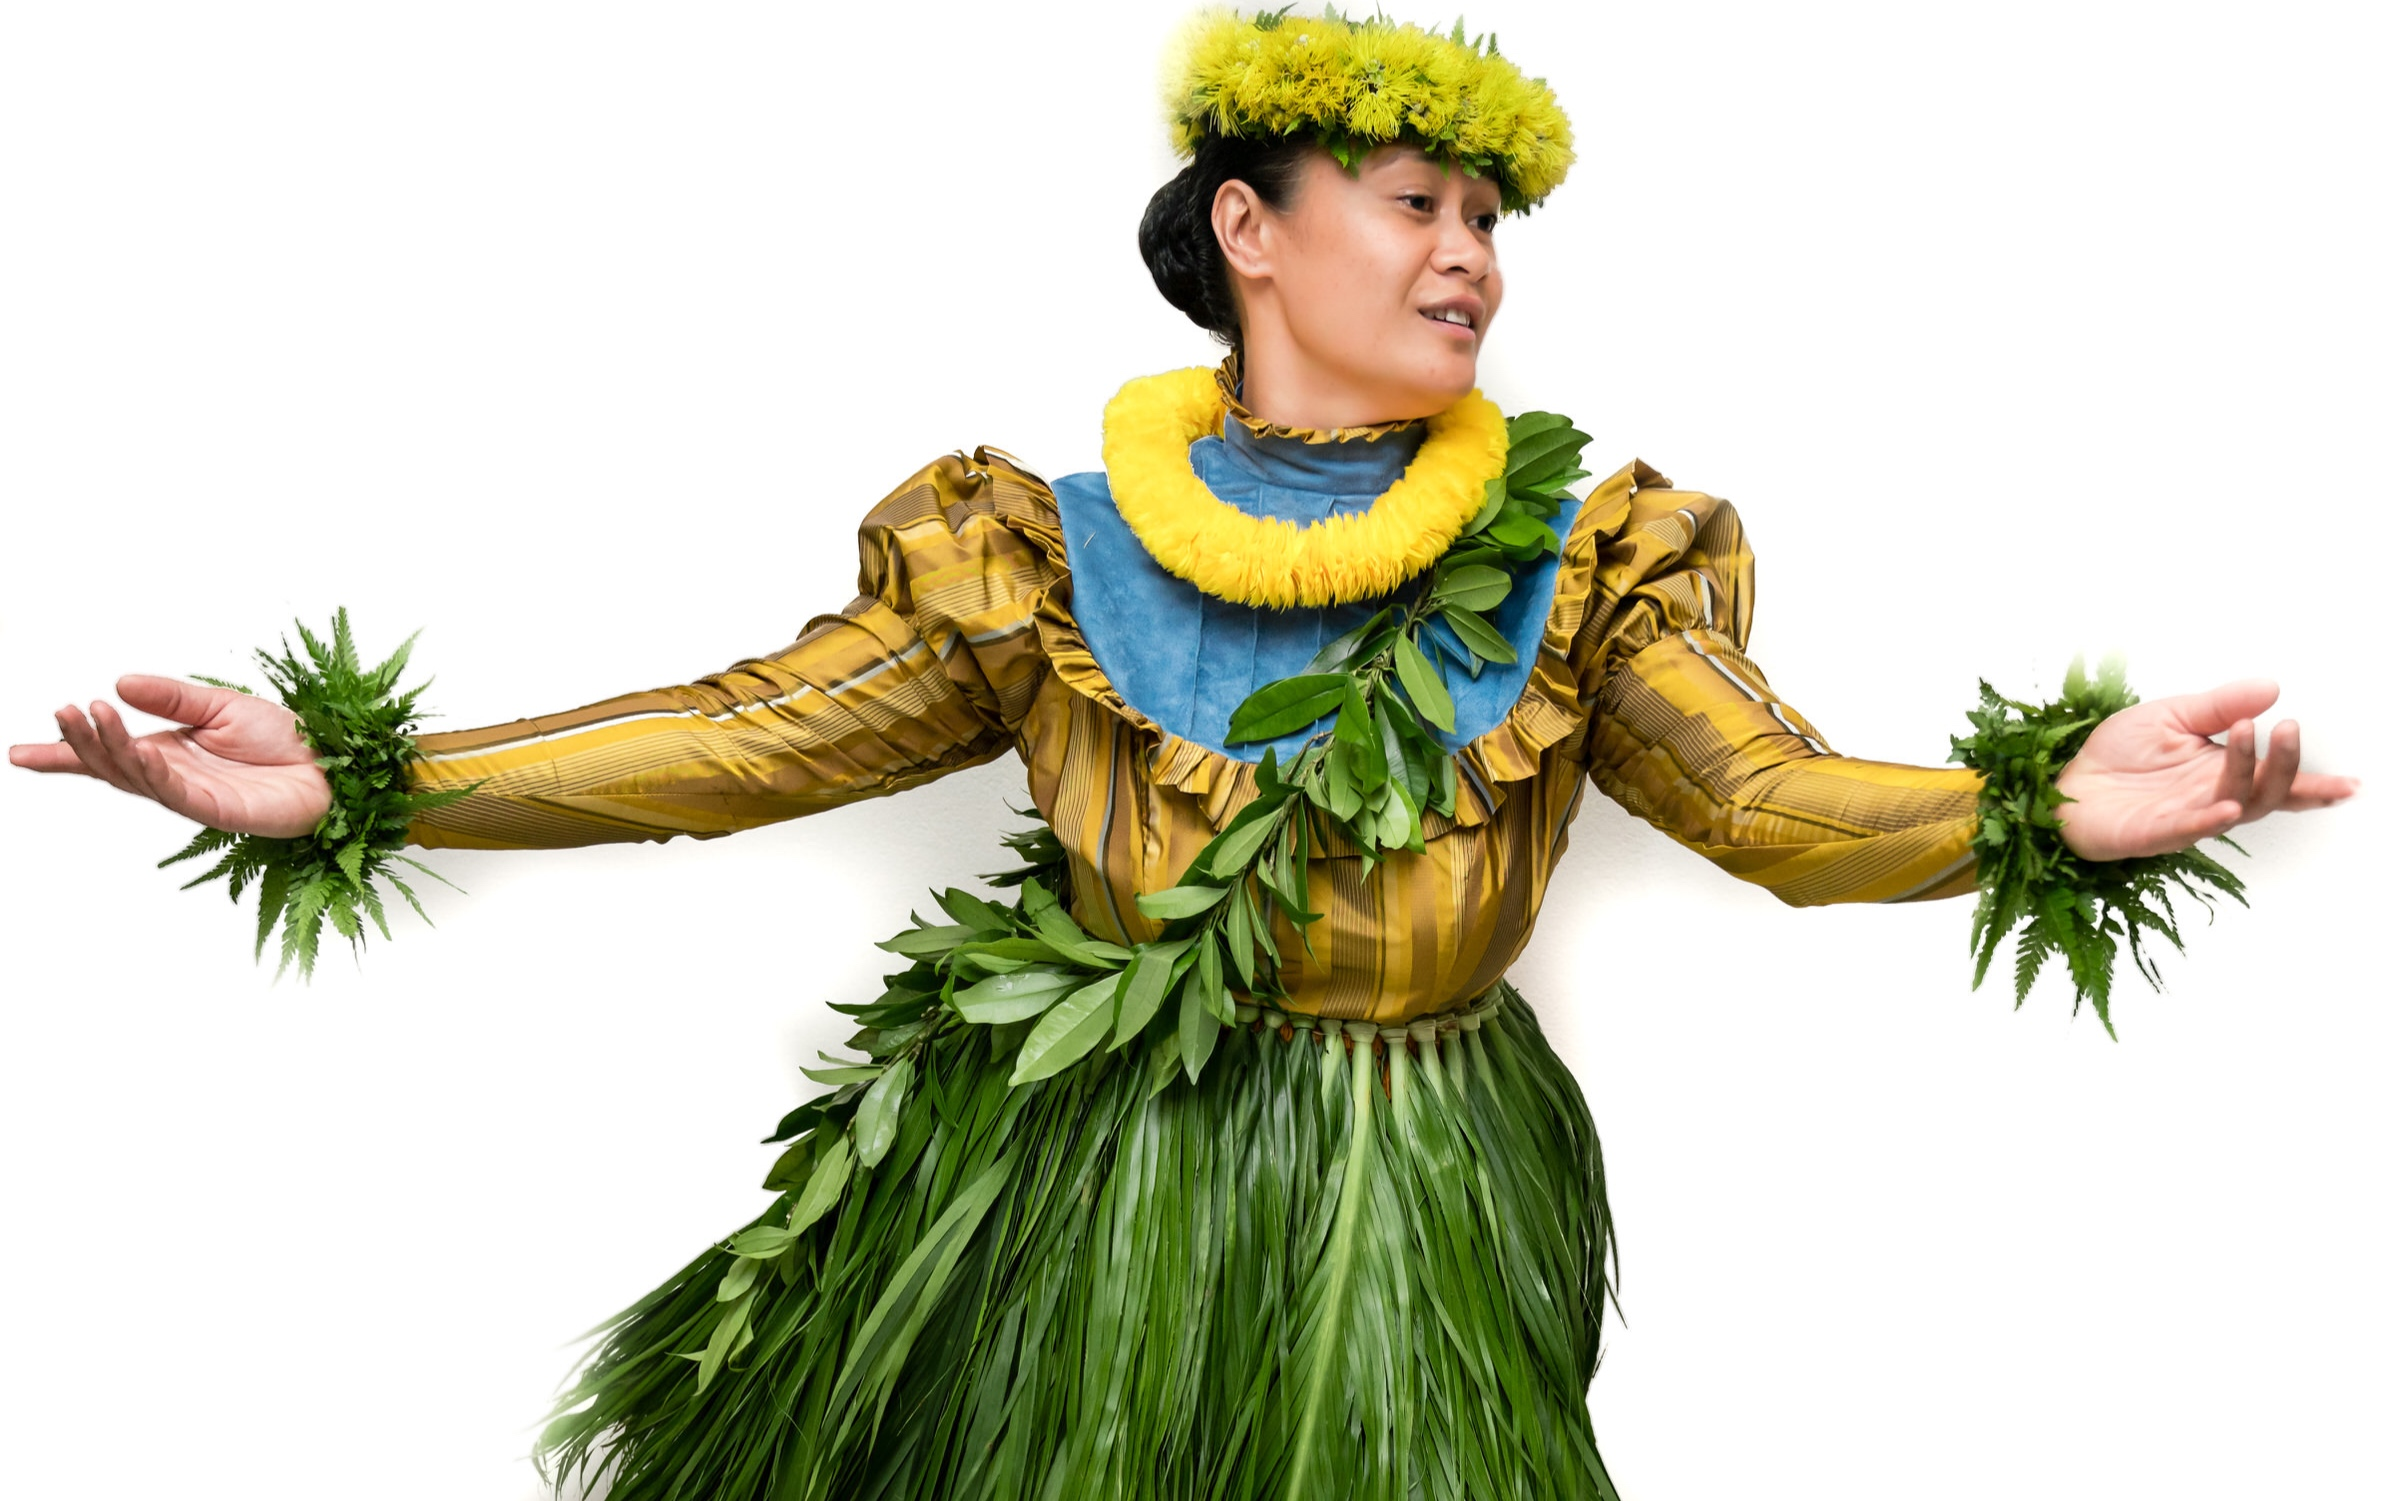 Halau-Manaola-Merrie-Monarch-Hula-Festival-EMotion-Galleries-Ranae-Keane-Photography-Destination-Wedding-Big-Island-Hawaii_019_180406_.jpg